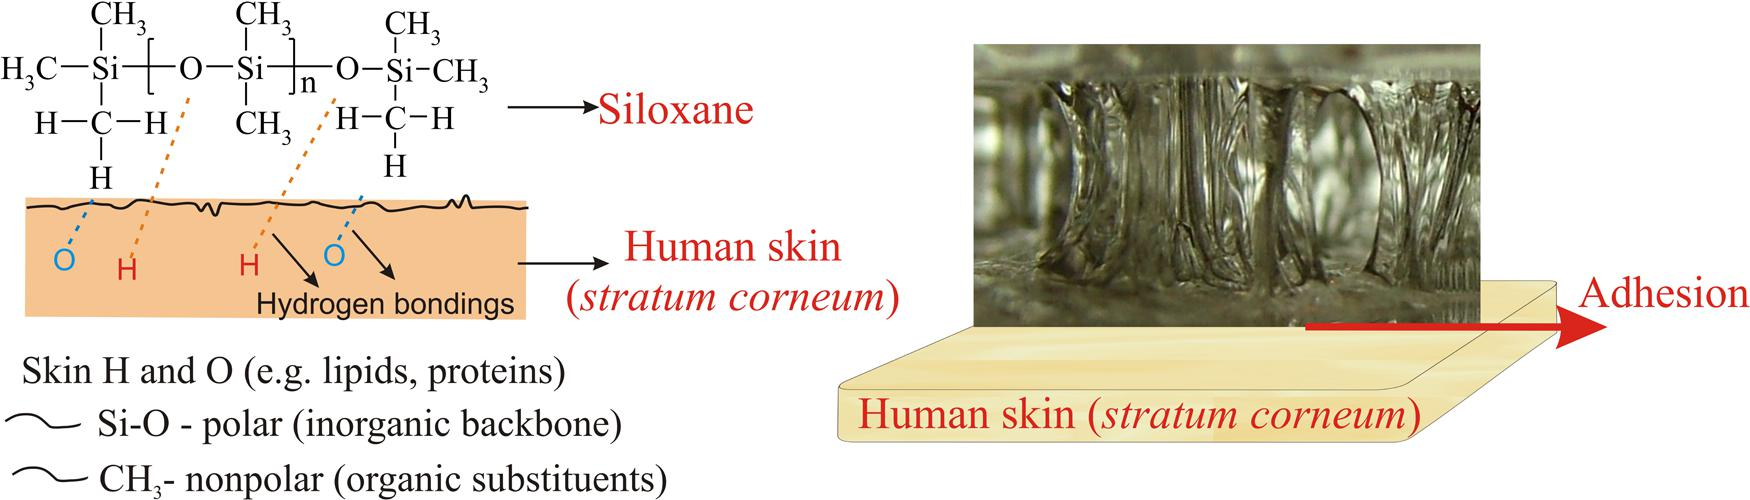 Frontiers | Direct Human Contact with Siloxanes (Silicones